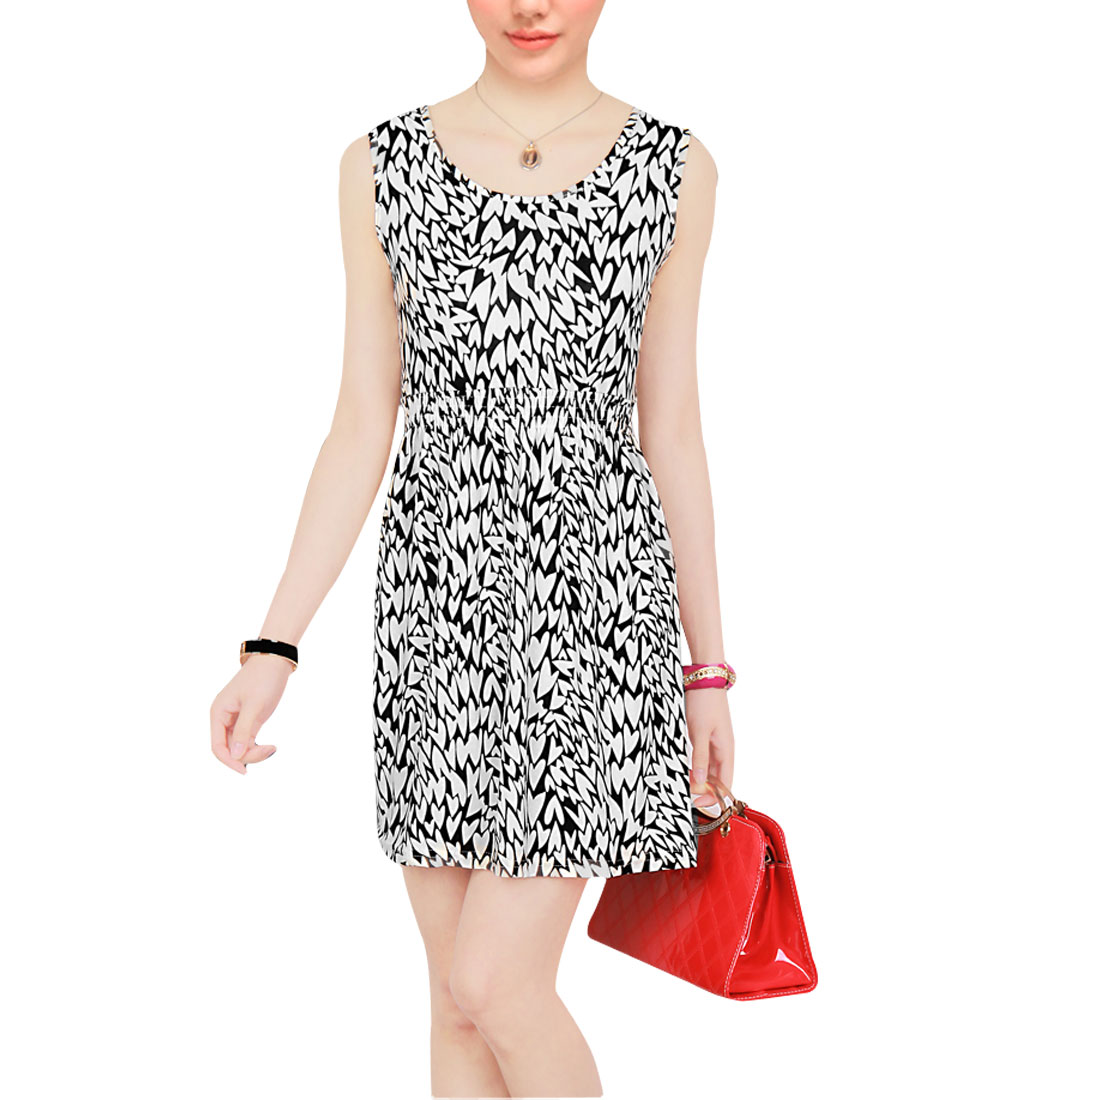 Summer Sleeveless Sheath Wasit Black White XS Mini A Line Dress for Ladies